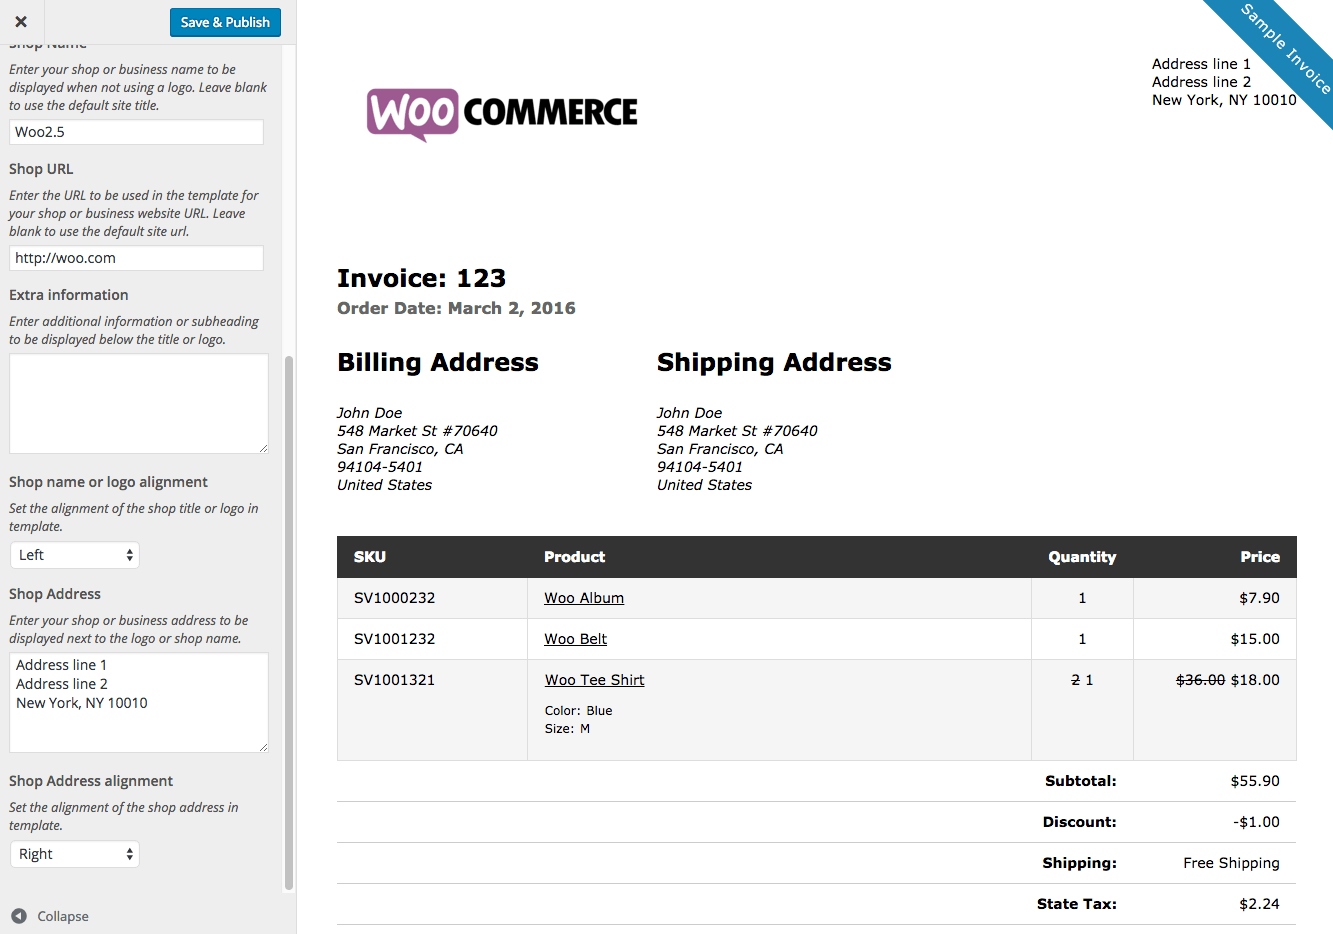 Ultrablogus  Inspiring Woocommerce Print Invoices Amp Packing Lists  Woocommerce Docs With Extraordinary Woocommerce Print Invoices  Packing Lists Customizer With Easy On The Eye Confirming Receipt Of Email Also Receipt Generator Online In Addition Scan Your Receipts And Uscis Receipt Number Tracking As Well As Print Fake Receipts Additionally Example Of Receipt From Docswoocommercecom With Ultrablogus  Extraordinary Woocommerce Print Invoices Amp Packing Lists  Woocommerce Docs With Easy On The Eye Woocommerce Print Invoices  Packing Lists Customizer And Inspiring Confirming Receipt Of Email Also Receipt Generator Online In Addition Scan Your Receipts From Docswoocommercecom